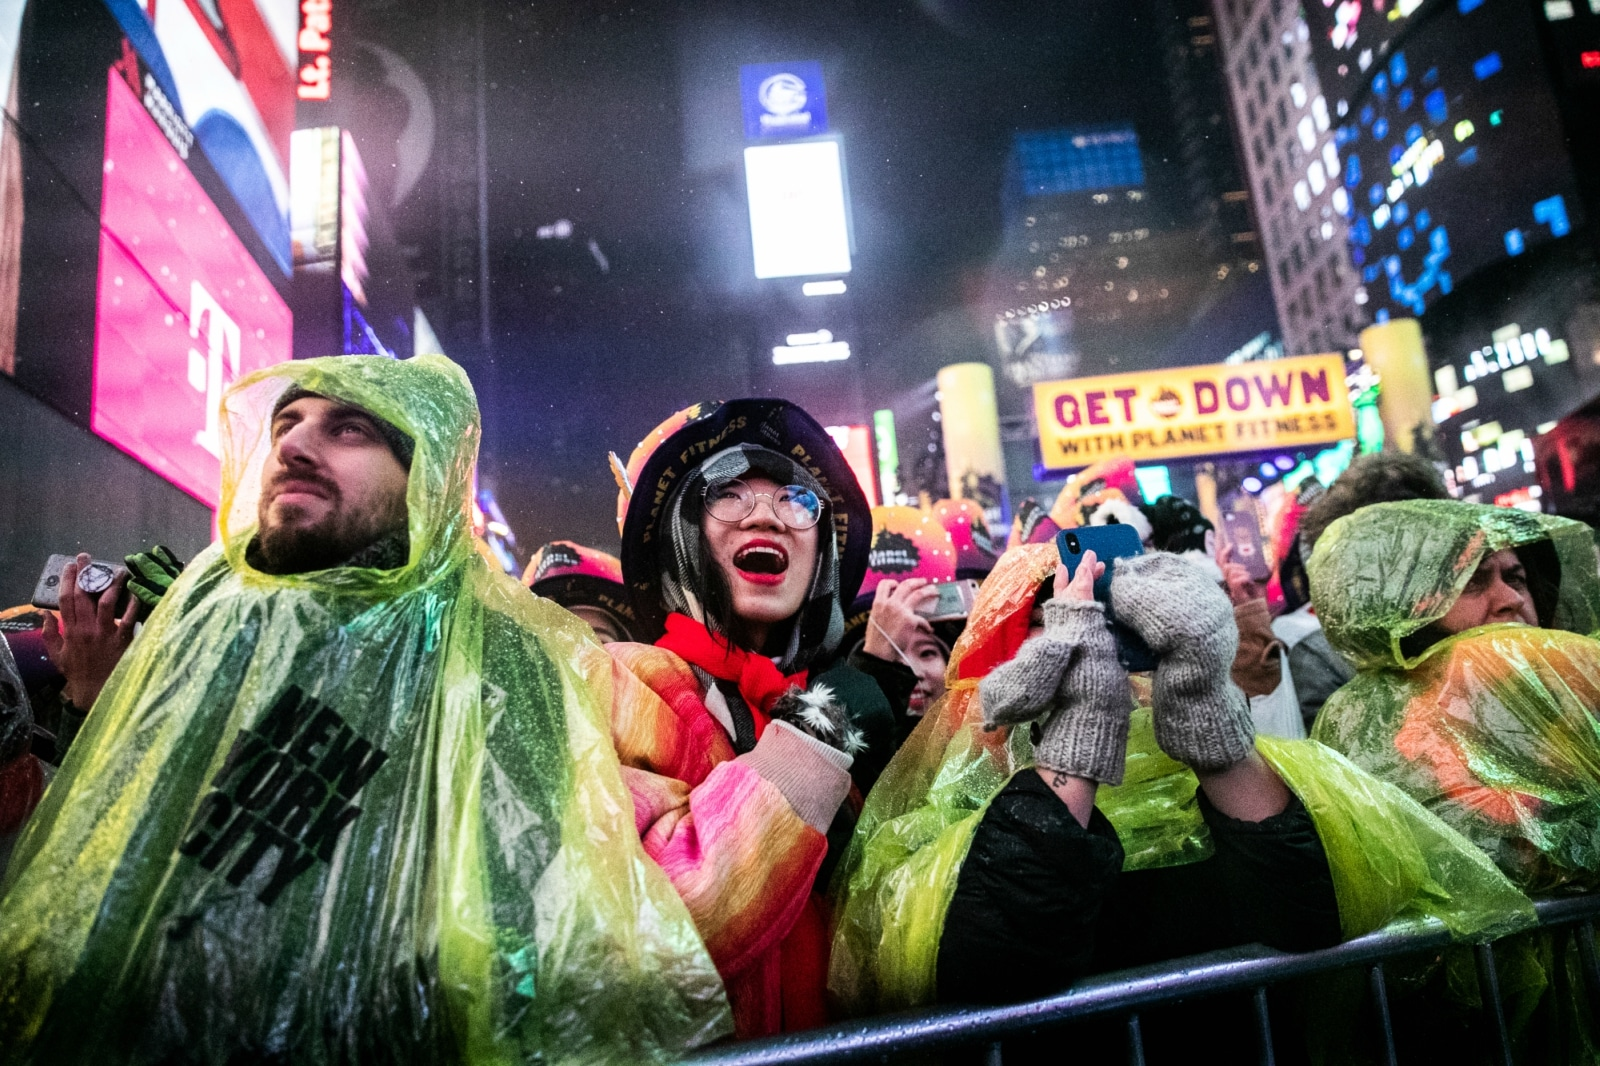 Revelers celebrate New Year's Eve in Times Square, in the Manhattan borough of New York, US, December 31, 2018. REUTERS/Jeenah Moon